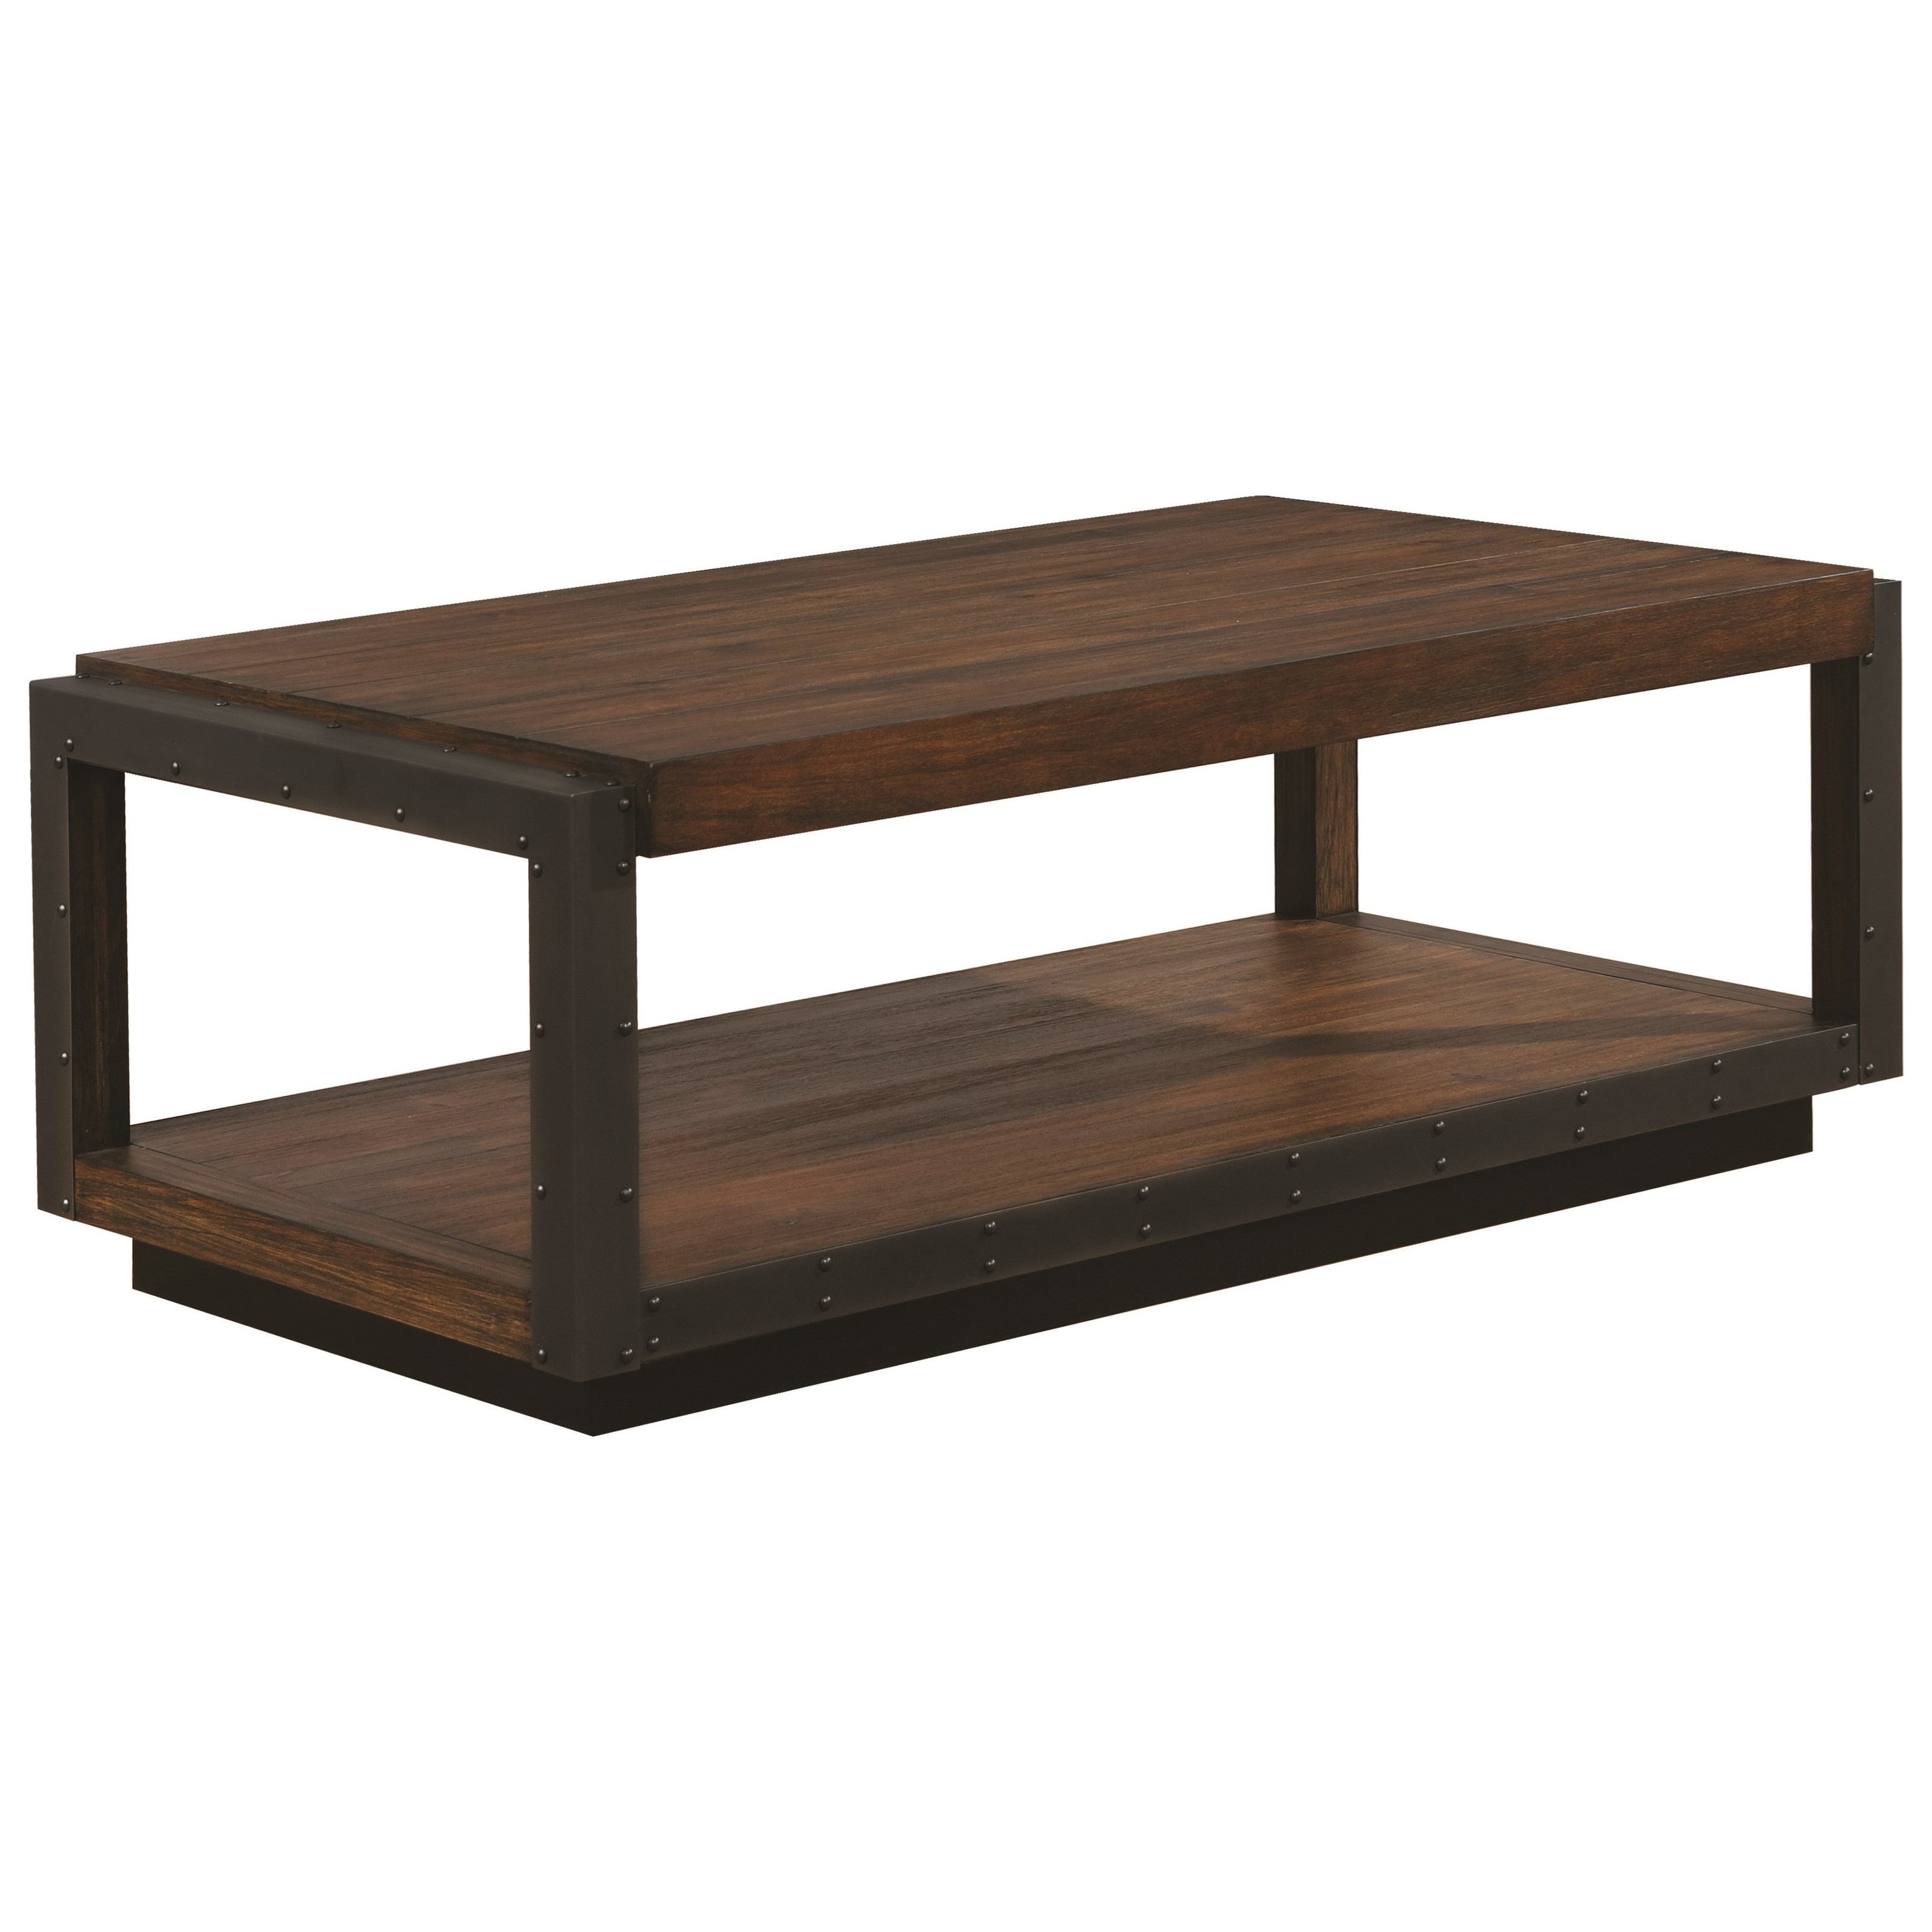 705658 industrial coffee table with black frame bana home decors